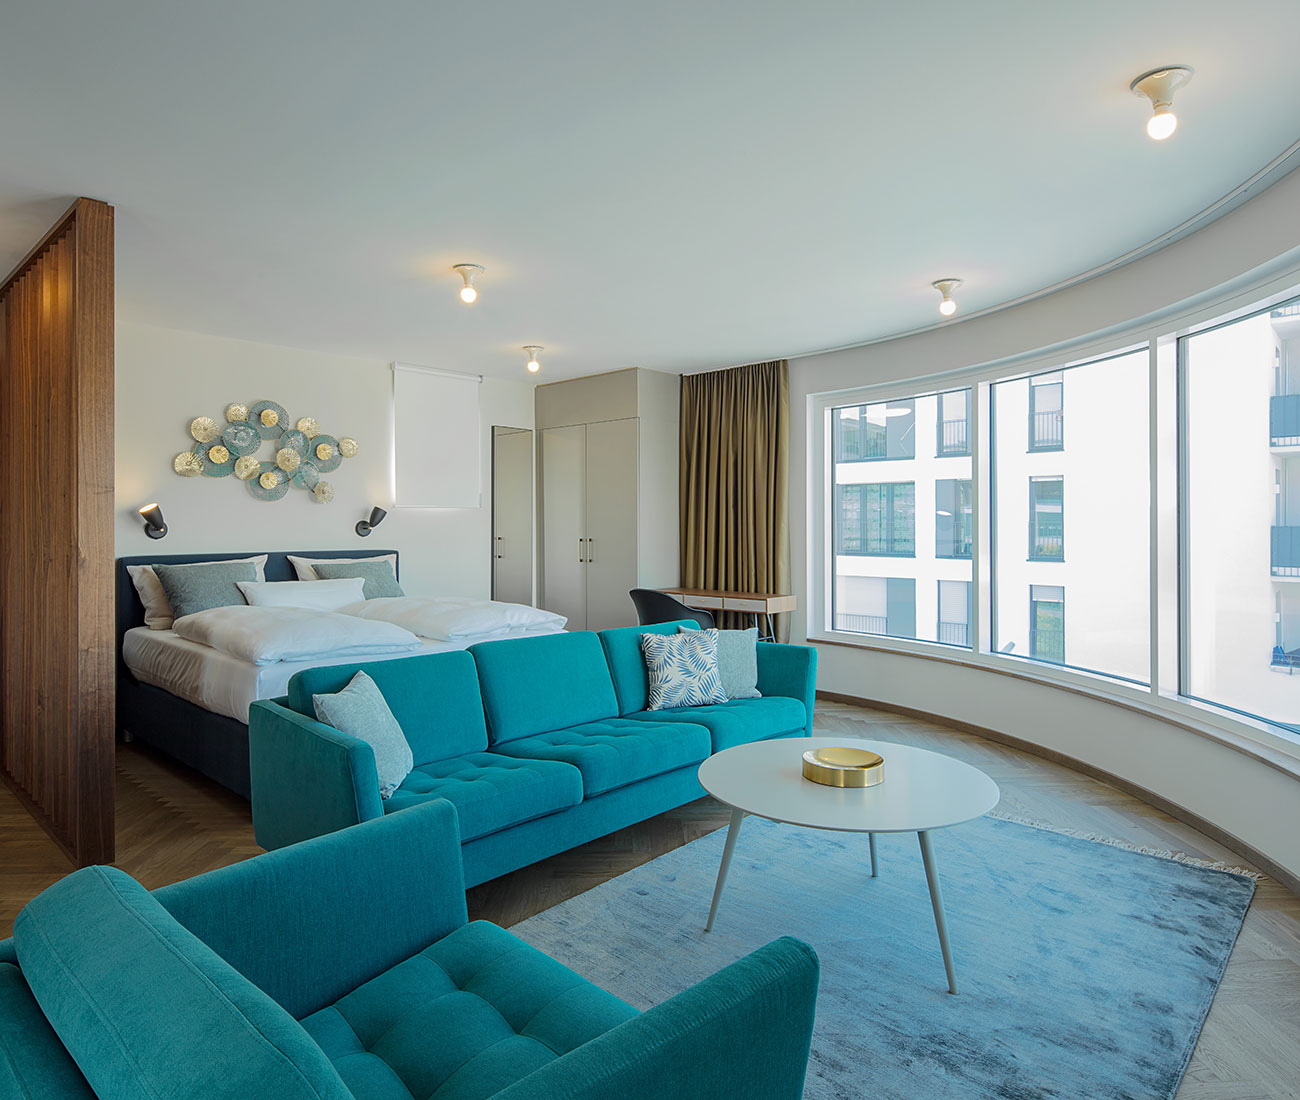 Hotel room inspiration with blue sofas